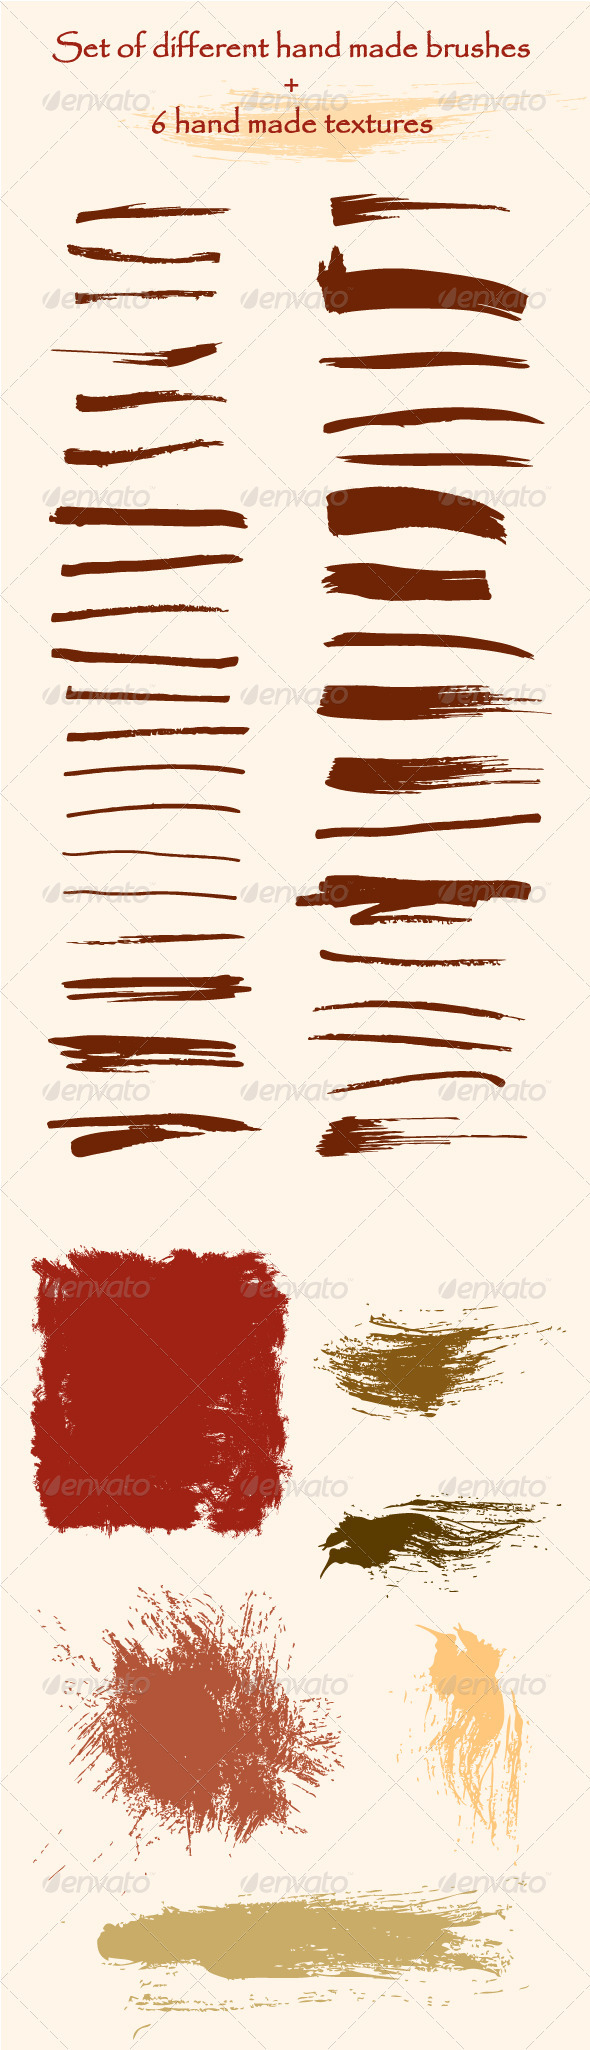 GraphicRiver Set of Hand Made Brushes and Textures 3719826